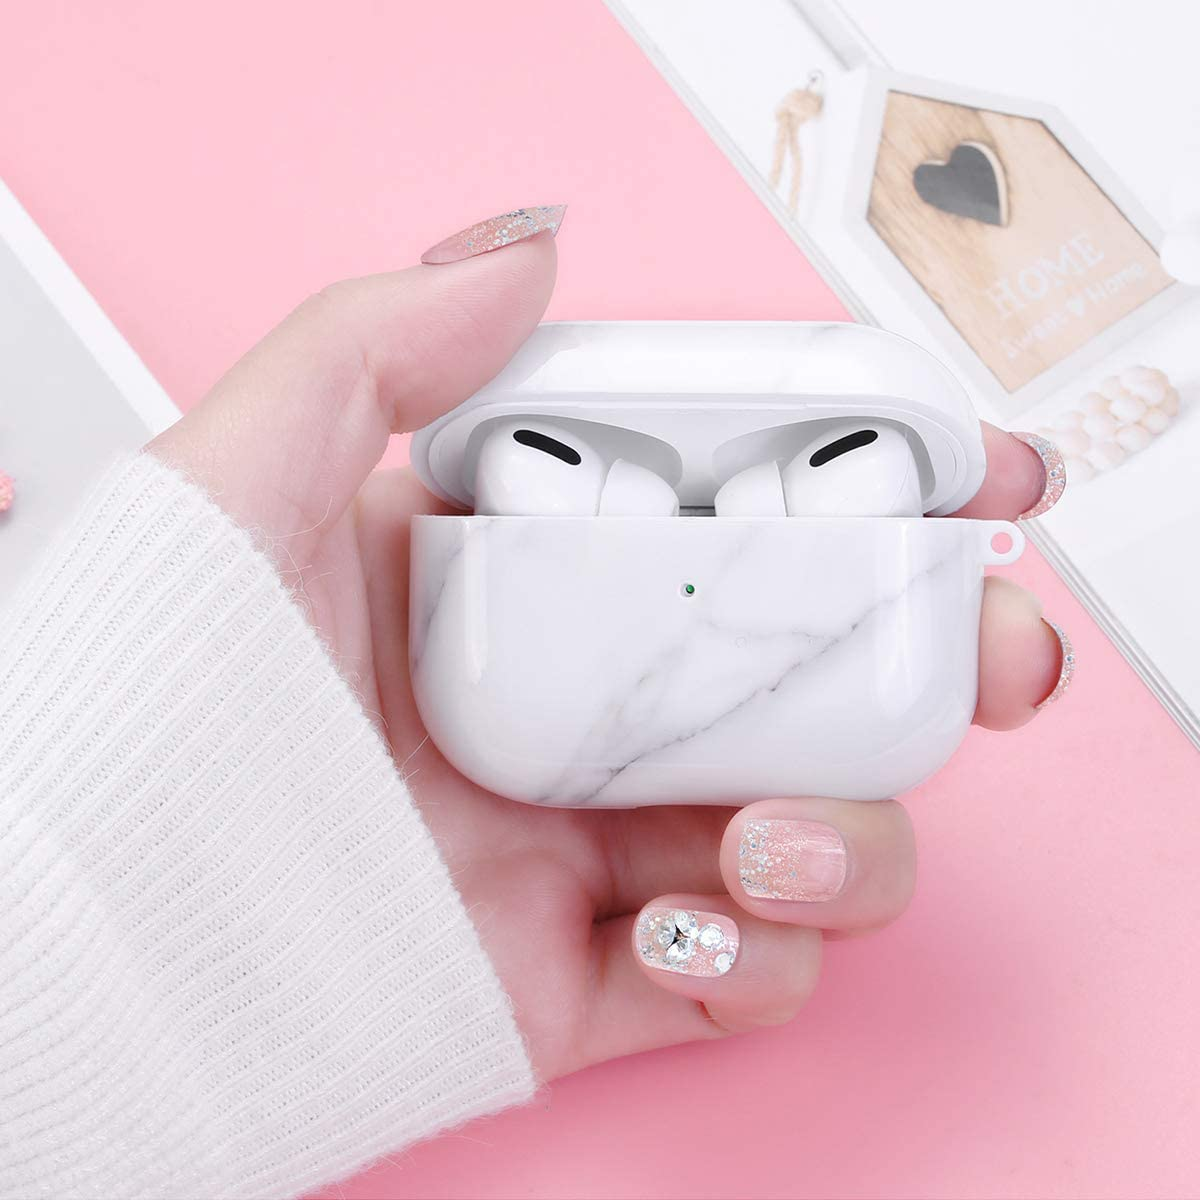 White Marble OTOPO Cute Design Marble Airpod Pro Accessories Protective Hard Case Cover Portable /& Shockproof Women Girls Men with Heart-Shaped Keychain for Airpods 3 Charging Case Airpods Pro Case